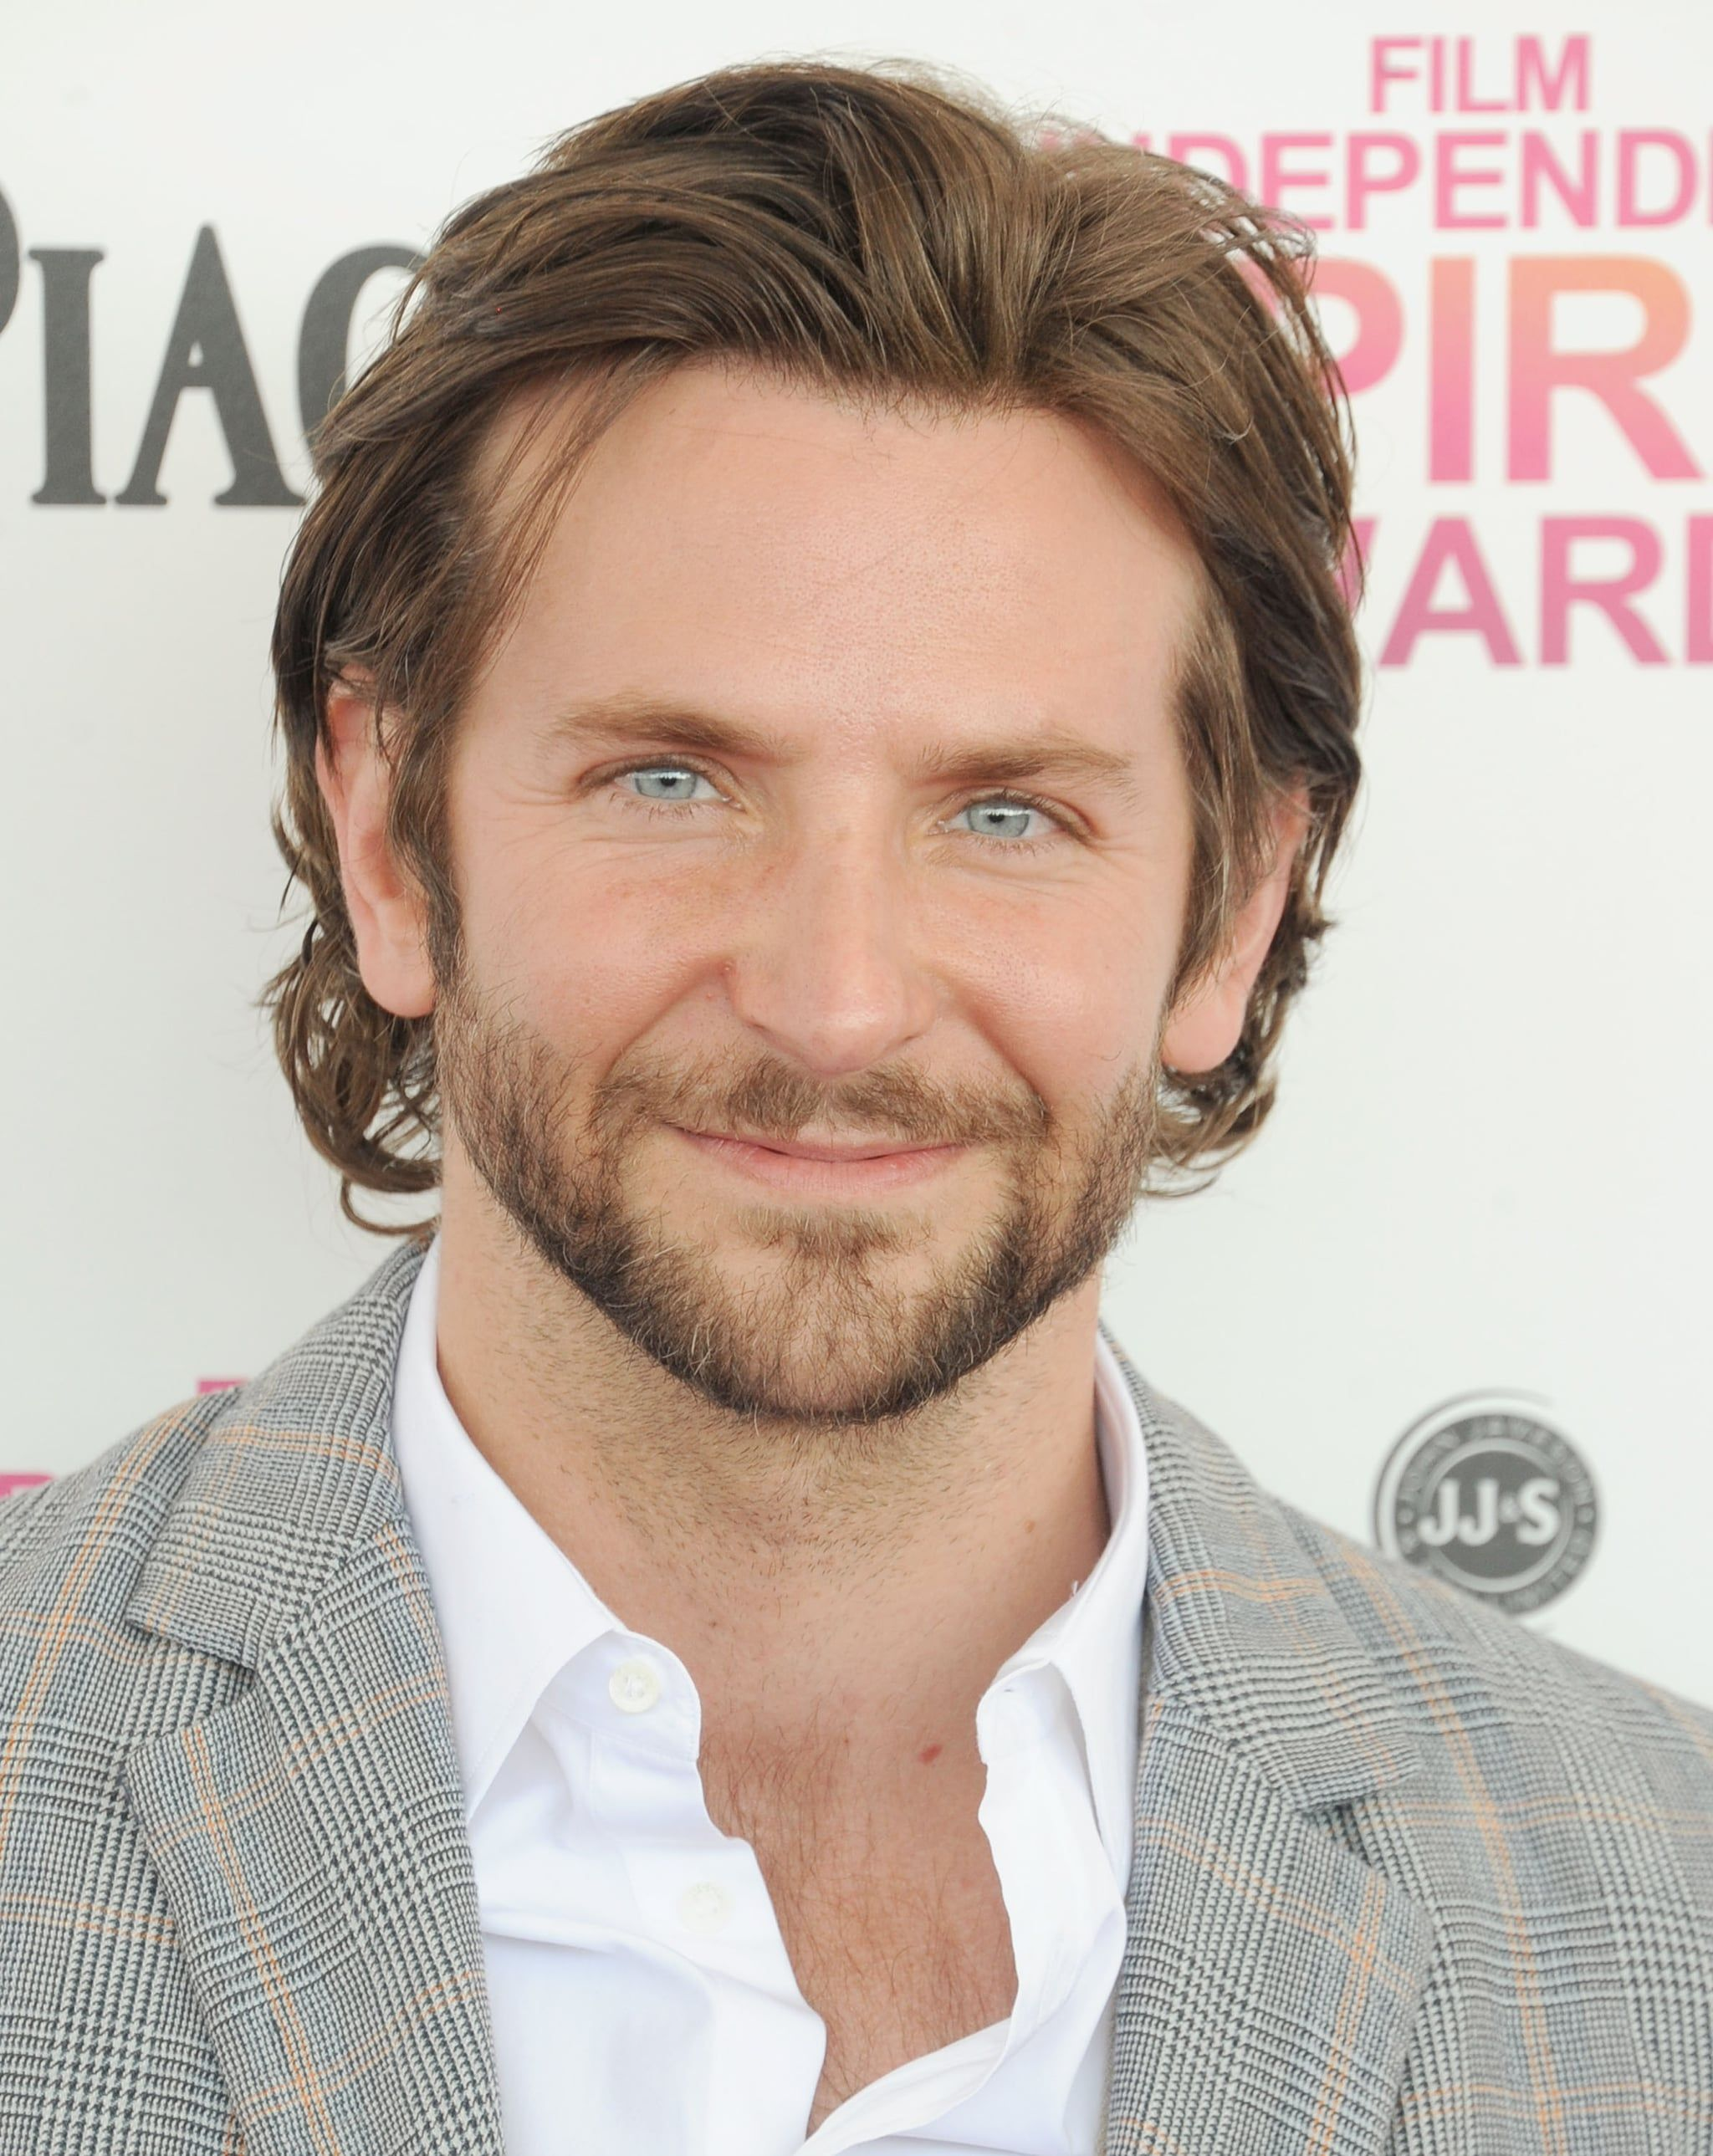 35 Pictures Of Bradley Cooper S Blue Eyes That Will Stop You In Your Tracks In 2020 Bradley Cooper Men Hair Color Blue Eyes